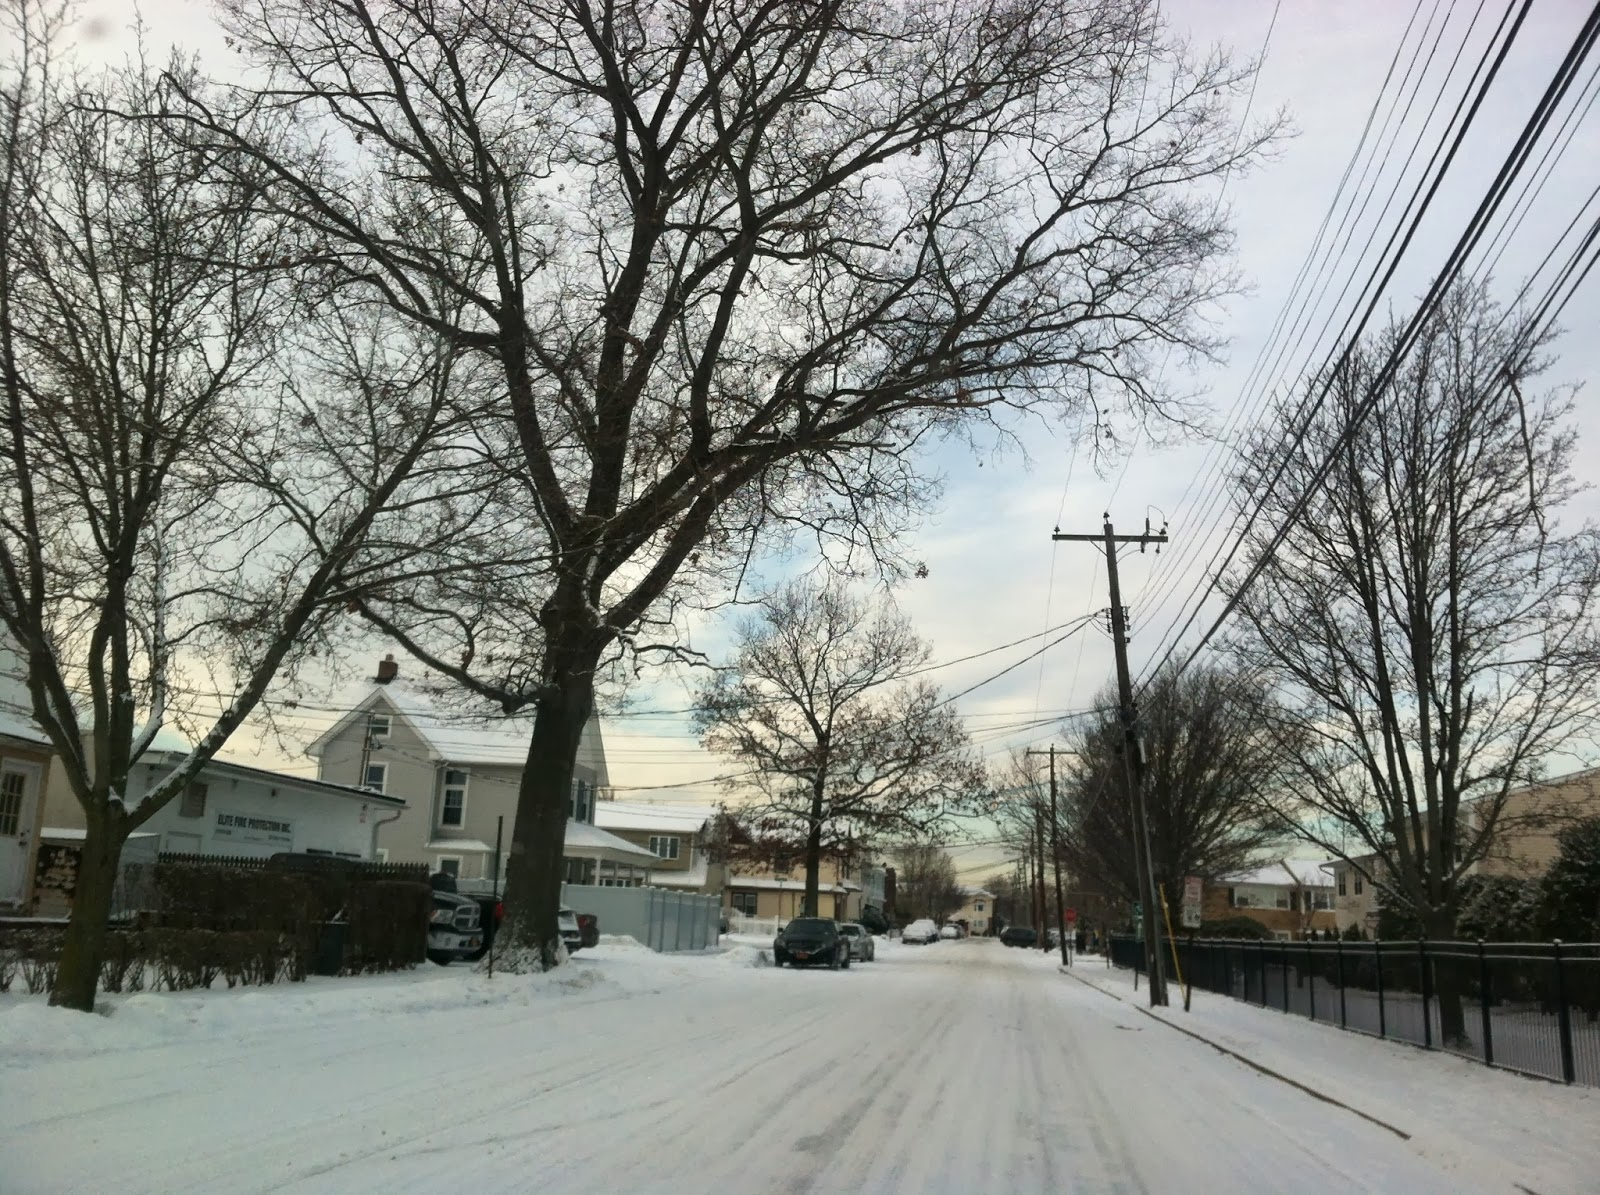 Morning-Snow-in-Farmingdale